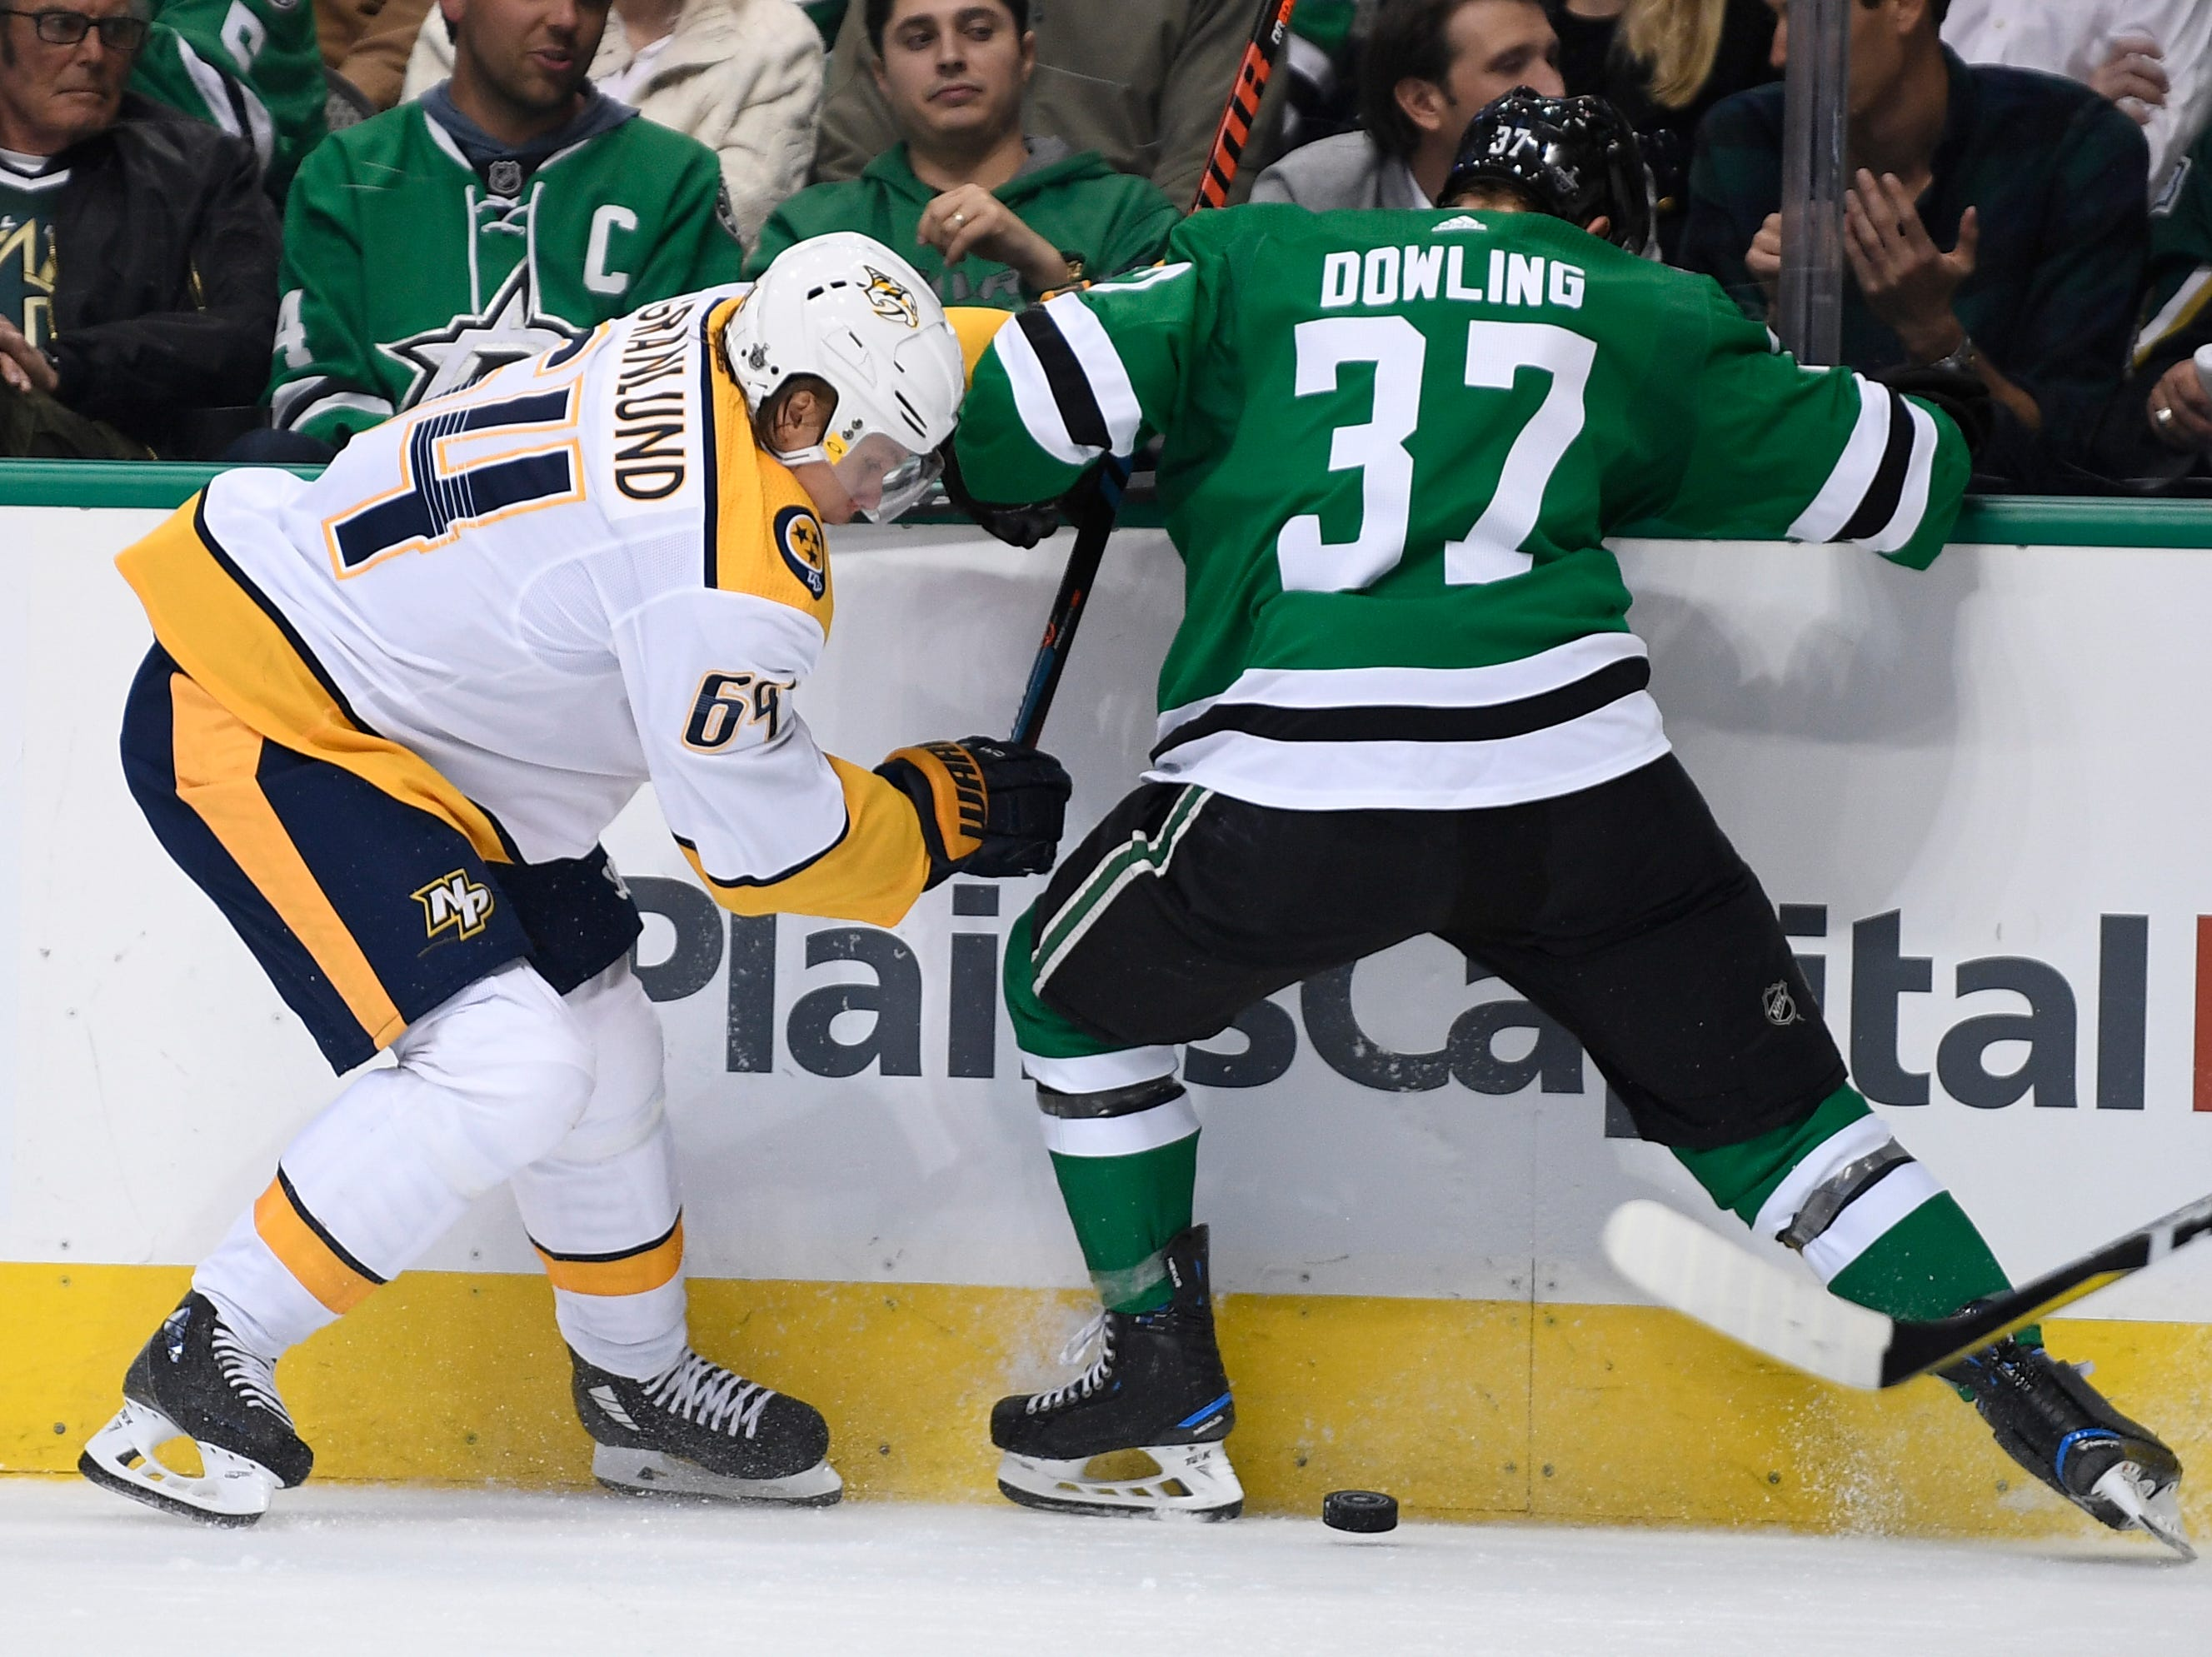 Nashville Predators center Mikael Granlund (64) and Dallas Stars center Justin Dowling (37) battle for the puck along the boards during the second period of the divisional semifinal game at the American Airlines Center in Dallas, Texas., Monday, April 15, 2019.